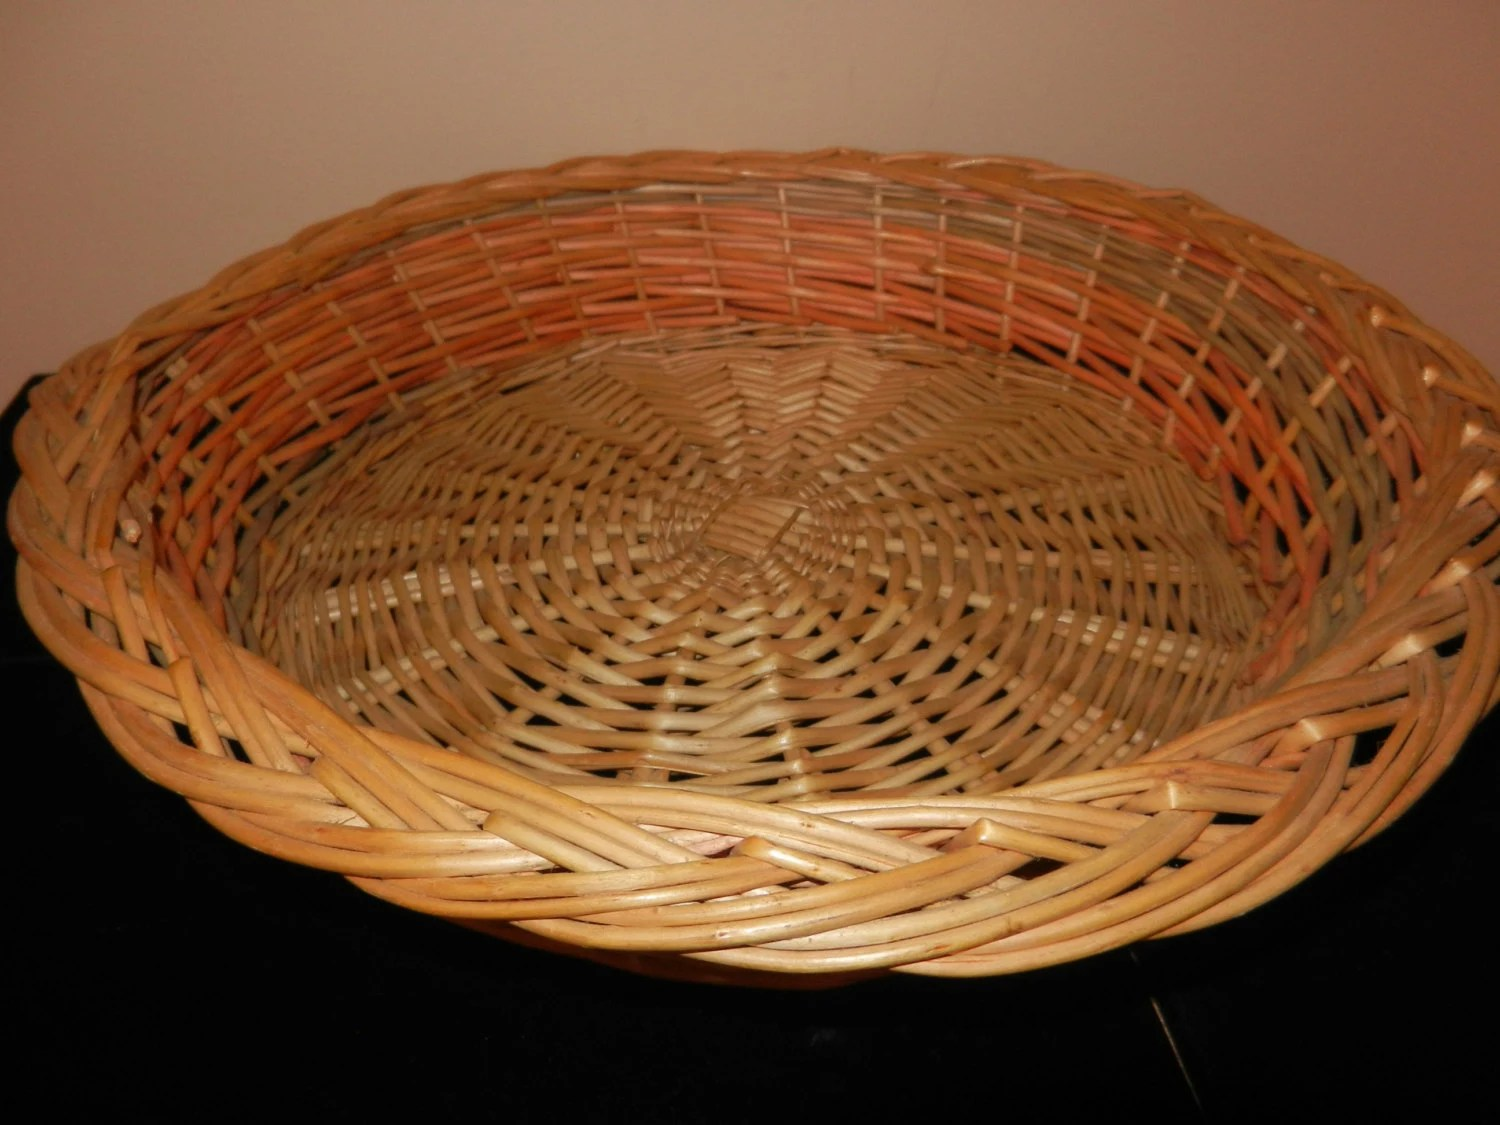 Designer Fruit Basket Basket Woven Basket Decorative Baske Fruit Baskett